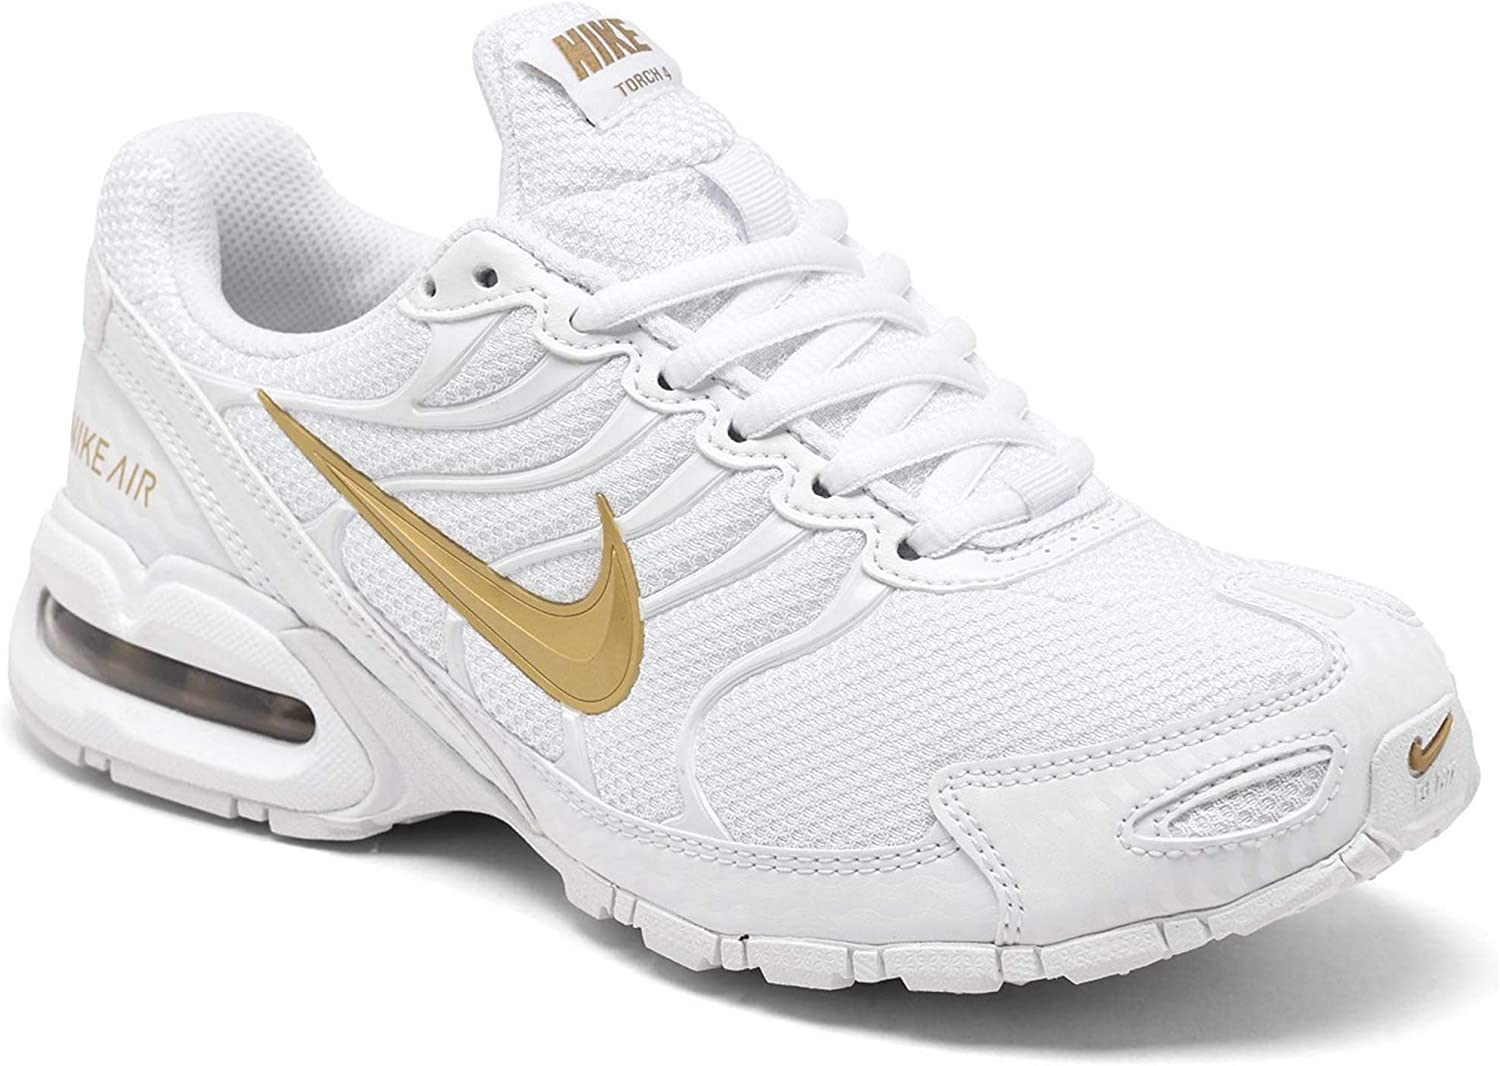 Sales for sale Nike Women's Popular Running Shoes